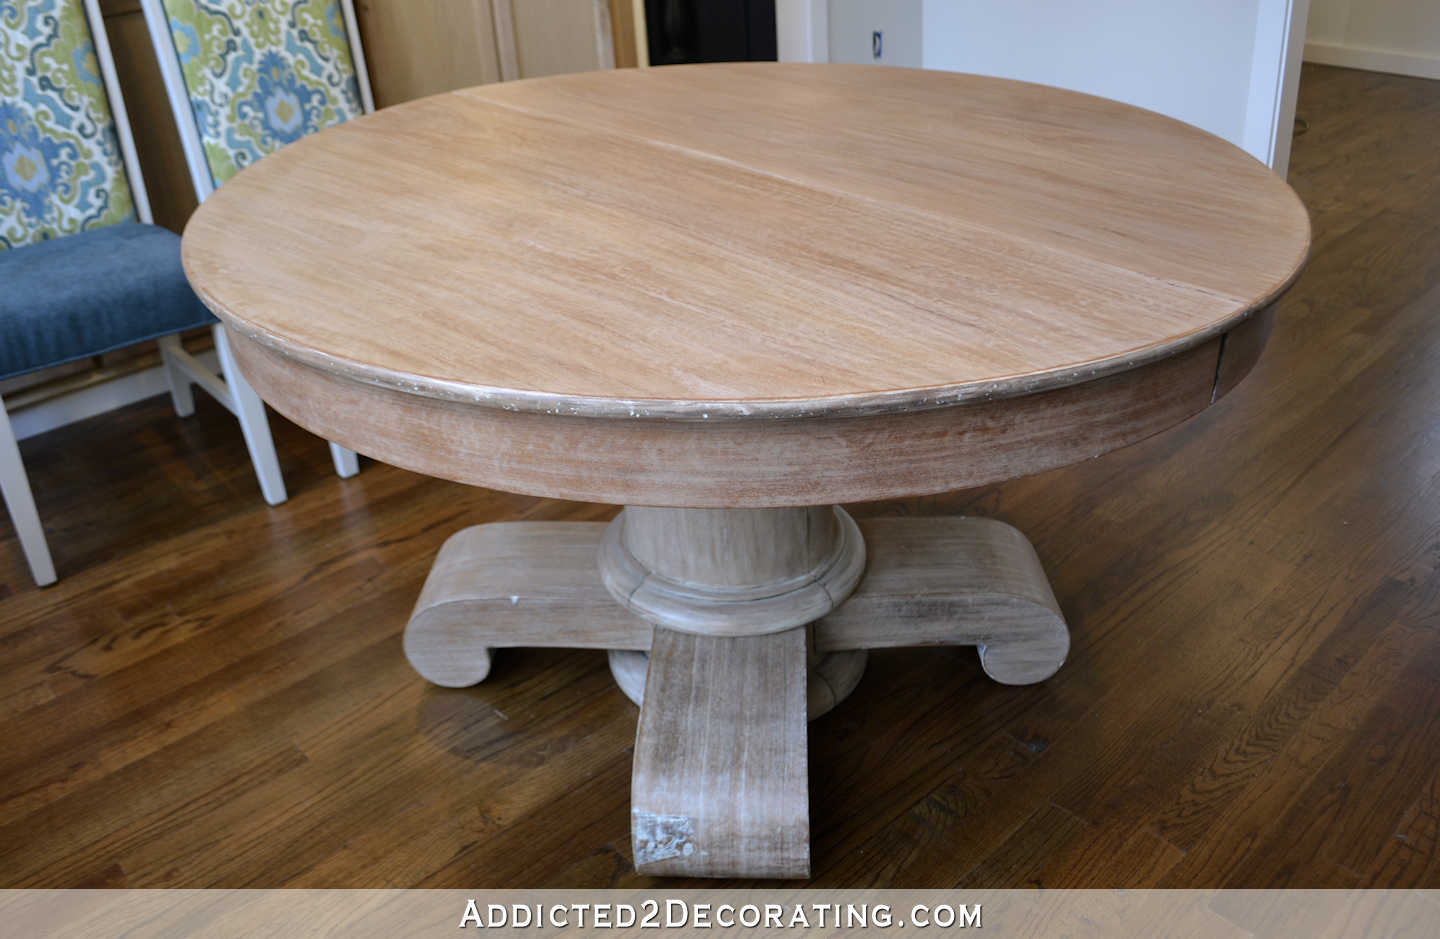 breakfast room dining table makeover - refinished table after